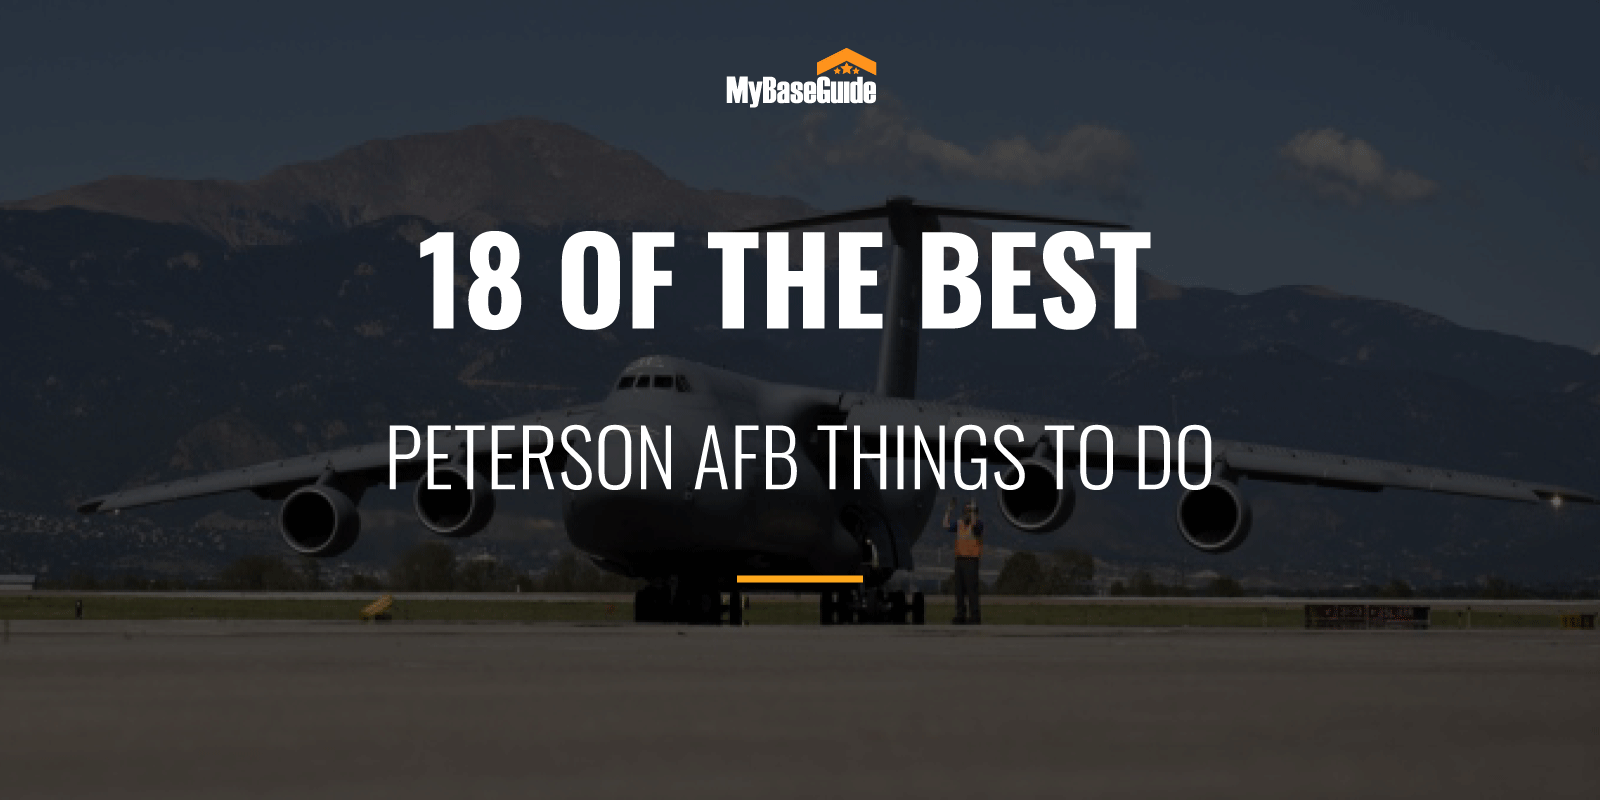 18 Of the Best Peterson AFB Things to Do